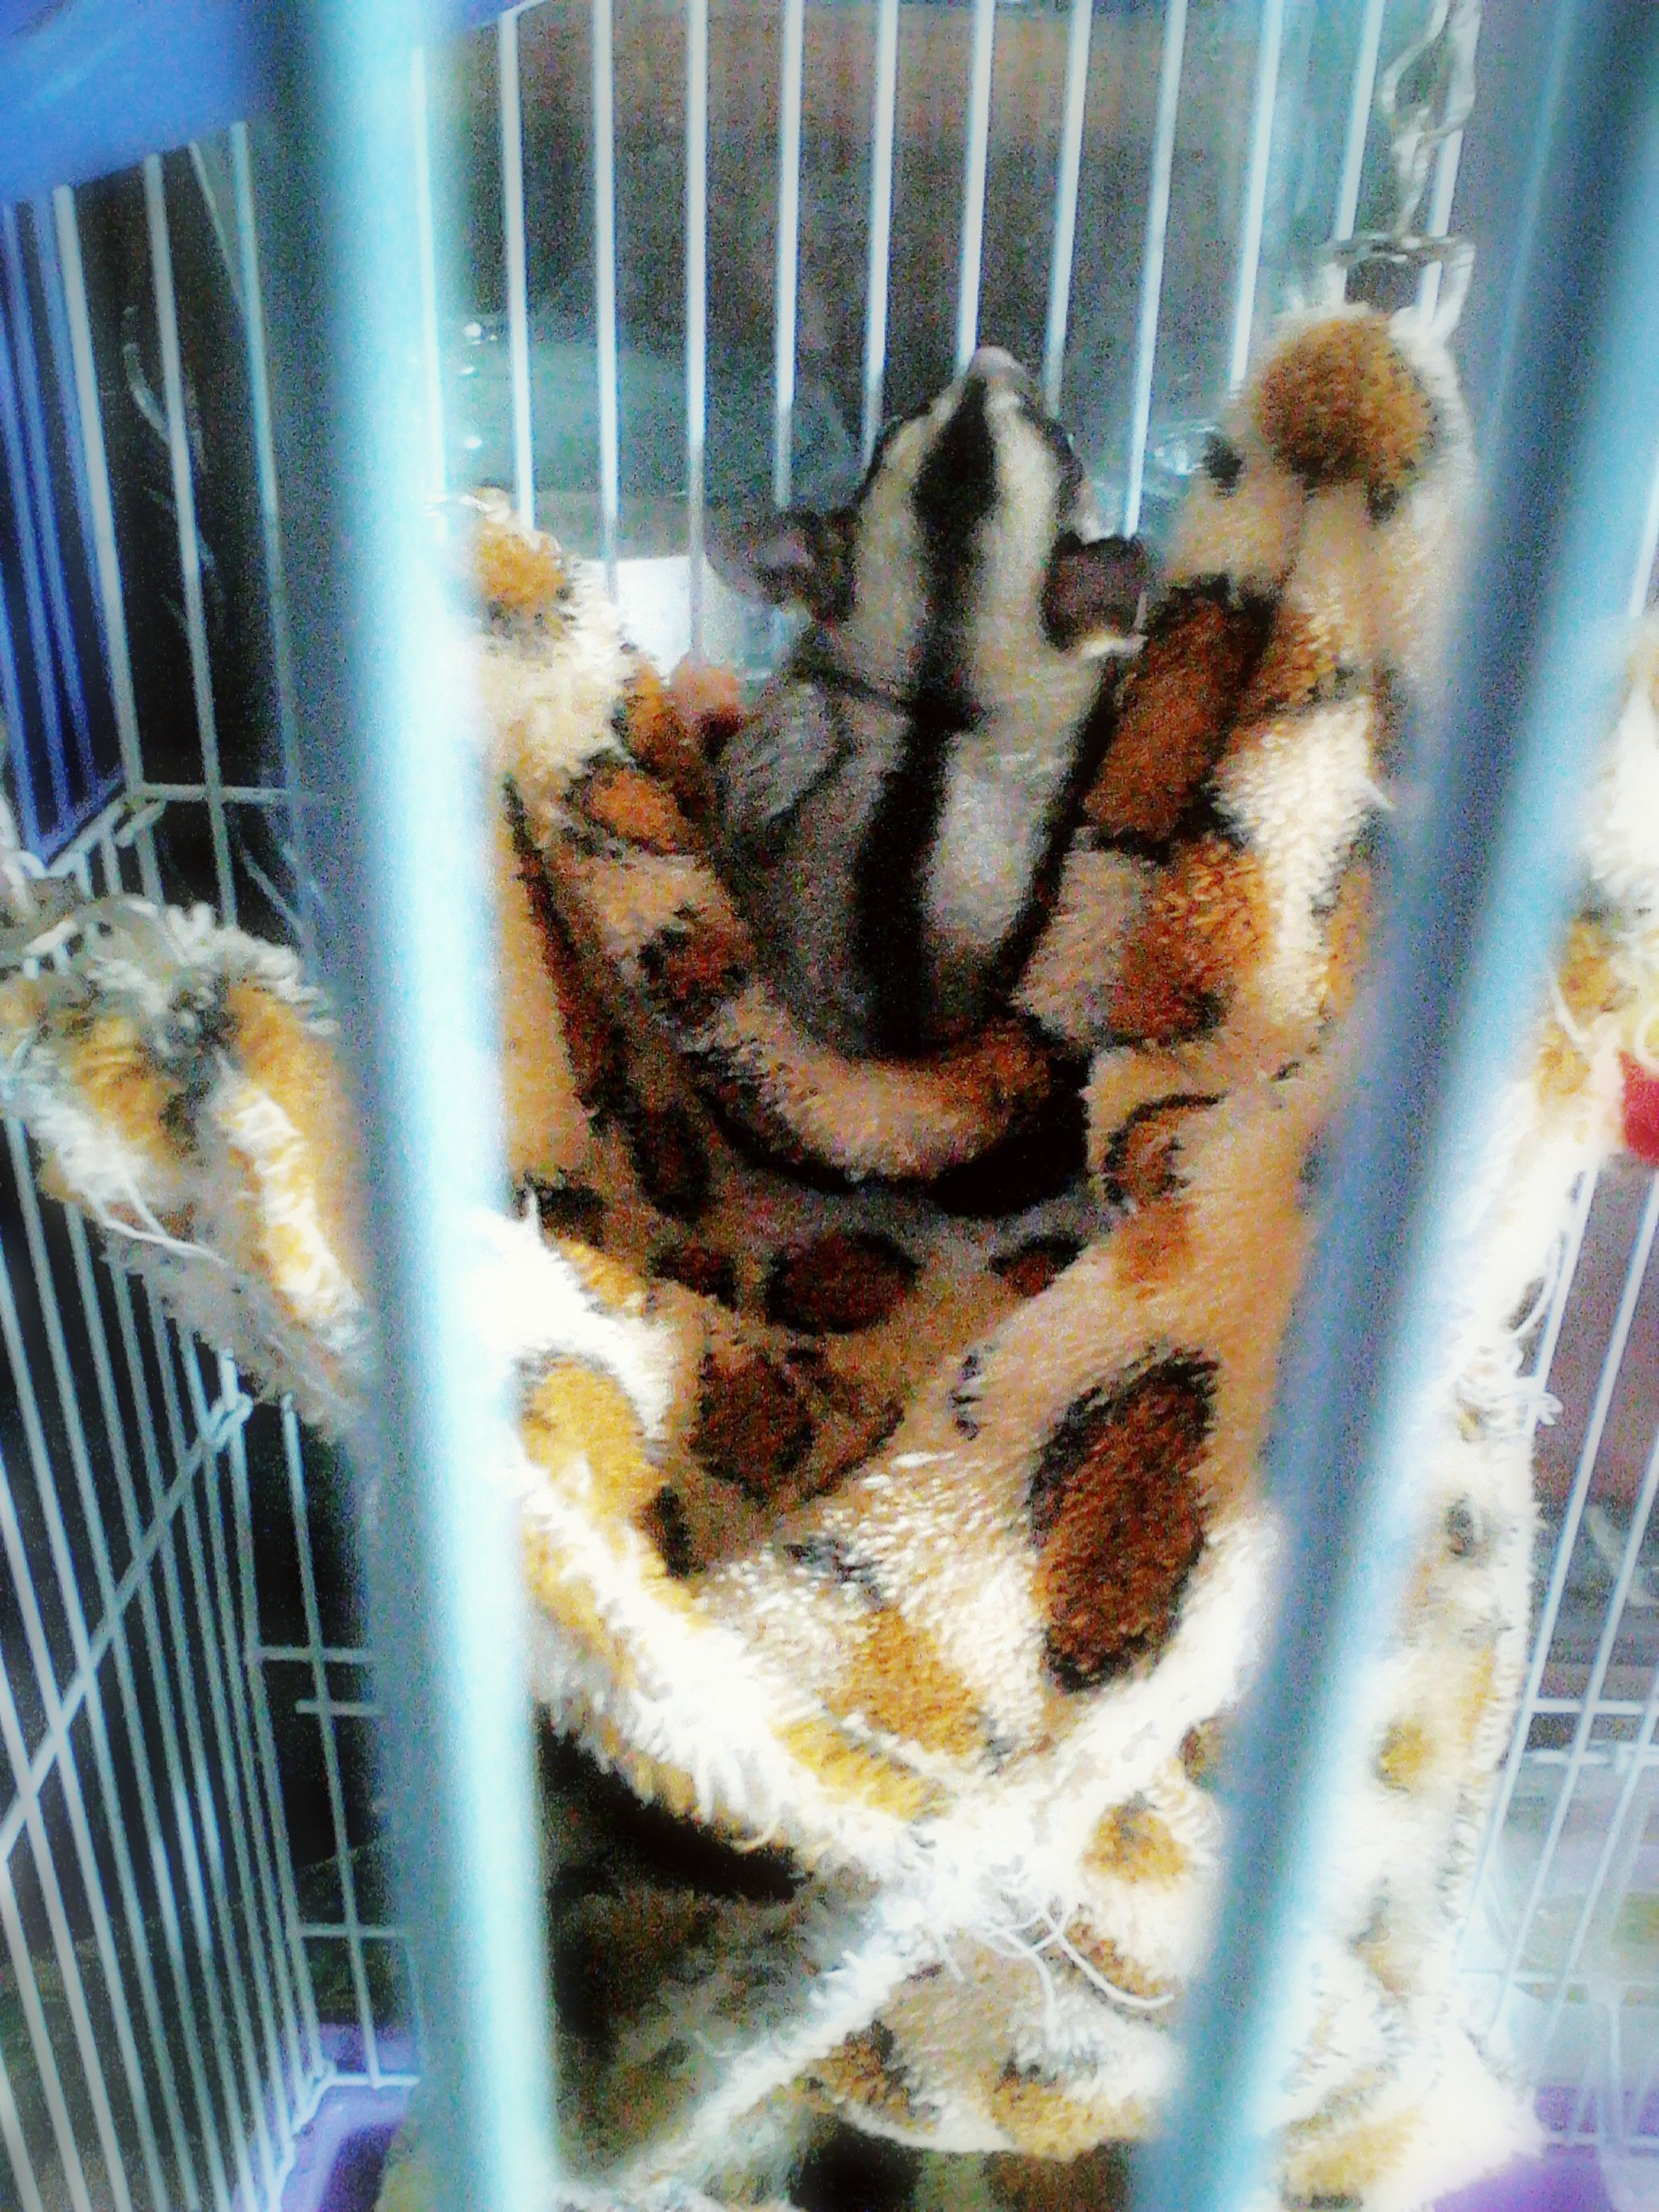 animal themes, indoors, close-up, animals in captivity, one animal, animals in the wild, wildlife, cage, fish, glass - material, metal, pattern, no people, trapped, day, sea life, selective focus, rope, transparent